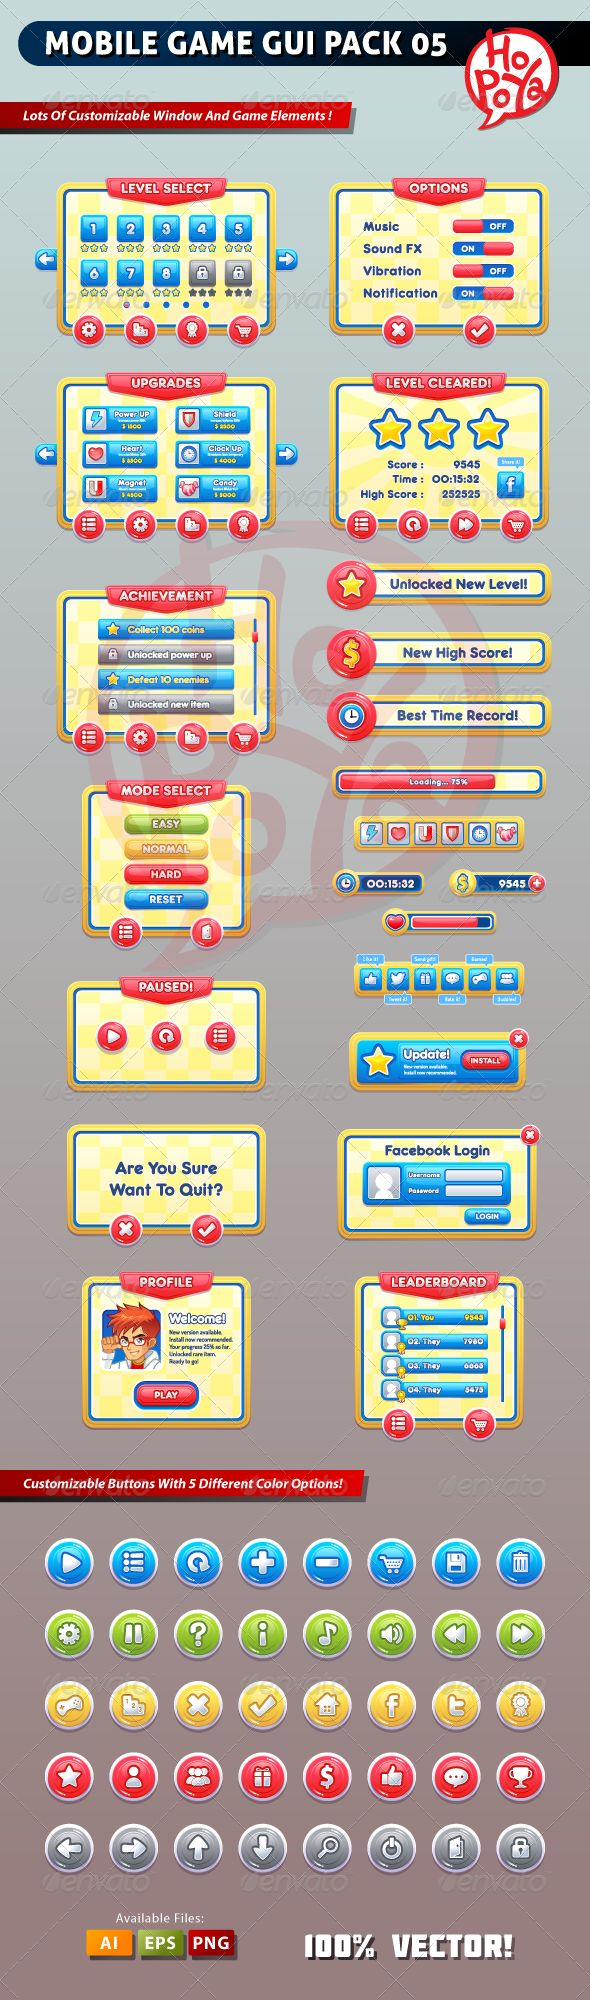 Mobile Game GUI Pack 05